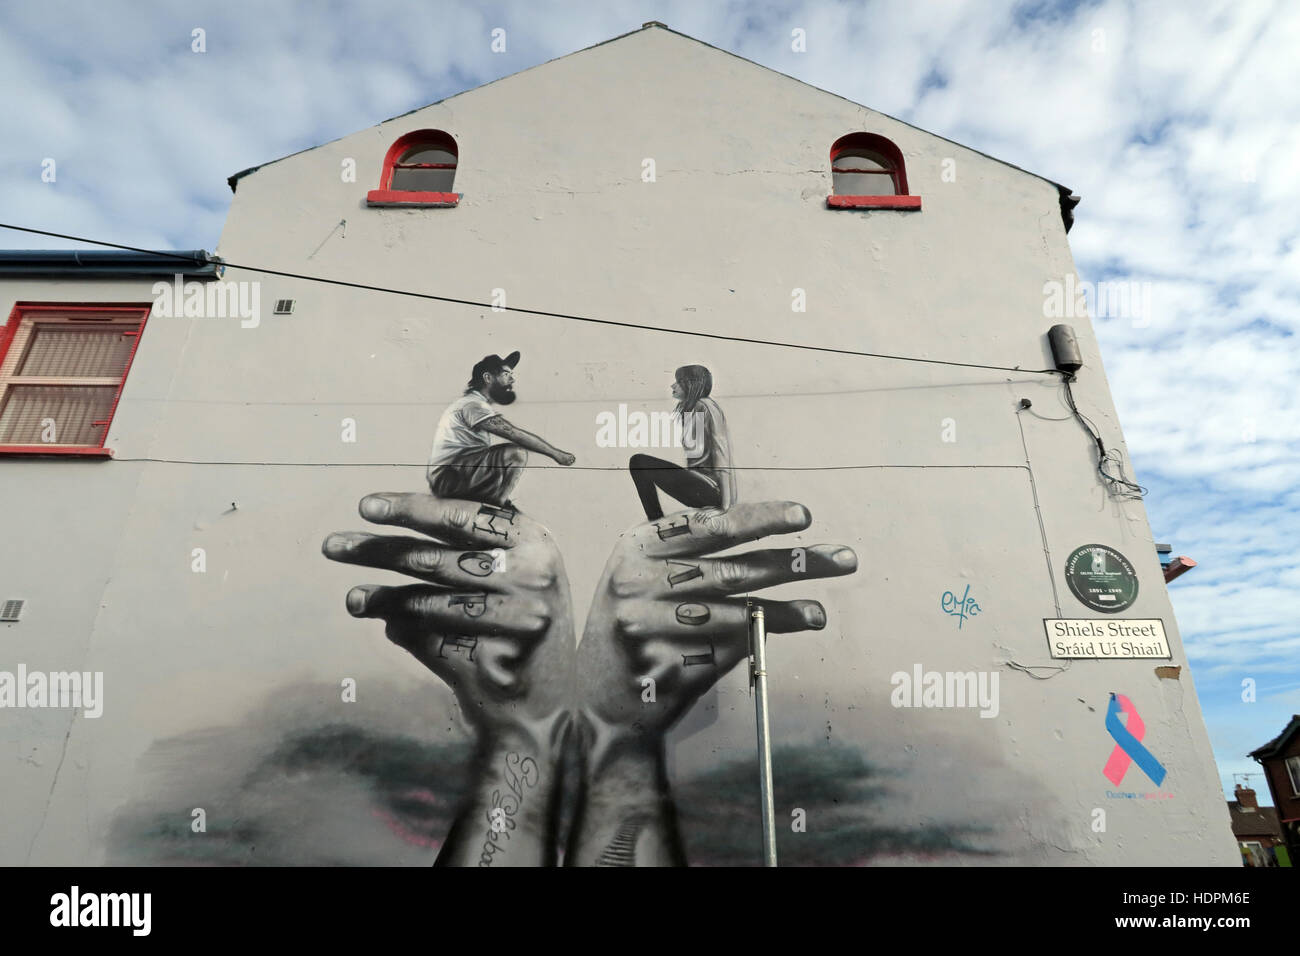 Road,painting,graffiti,resistance,IRA,peace,Northern Ireland,NI,UK,St,street,Eire,Irish,Republic,Irish Republic,conflict,Irish Republican Army,Political Change,arms,arm,couple,people,street,hand,hands,St,hands,gable end,Shiels Street,Shiels St,GoTonySmith,@HotpixUK,Tony,Smith,UK,GB,Great,Britain,United,Kingdom,Irish,British,Ireland,problem,with,problem with,issue with,NI,Northern,Northern Ireland,Belfast,City,Centre,Art,Artists,the,troubles,The Troubles,Good Friday Agreement,Peace,honour,painting,wall,walls,tribute,republicanism,Fight,Justice,West,Beal,feirste,martyrs,social,tour,tourism,tourists,urban,six,counties,6,backdrop,county,Antrim,occupation,good,Friday,agreement,peace,reconciliation,IRA,terror,terrorists,genocide,Belfast streets,catholic,community,catholics,Buy Pictures of,Buy Images Of,Images of,Stock Images,Tony Smith,United Kingdom,Great Britain,British Isles,republican cause,Belfast Catholic Community